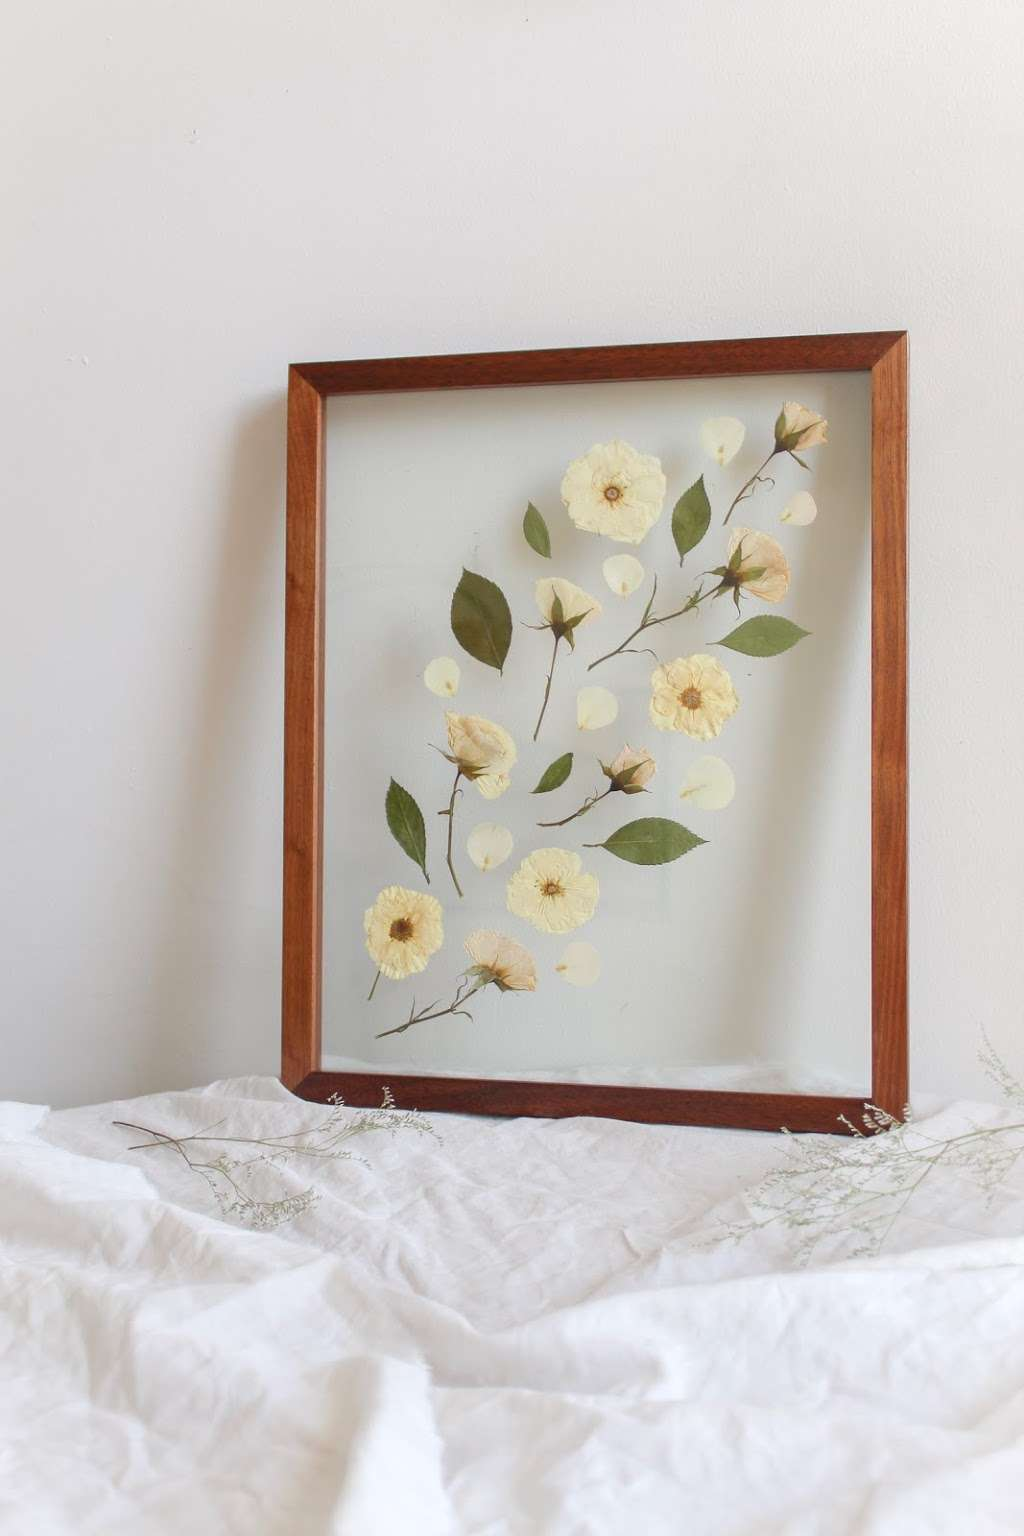 Framed Florals - florist  | Photo 10 of 10 | Address: 67 West St suite 325, Brooklyn, NY 11222, USA | Phone: (914) 719-7931